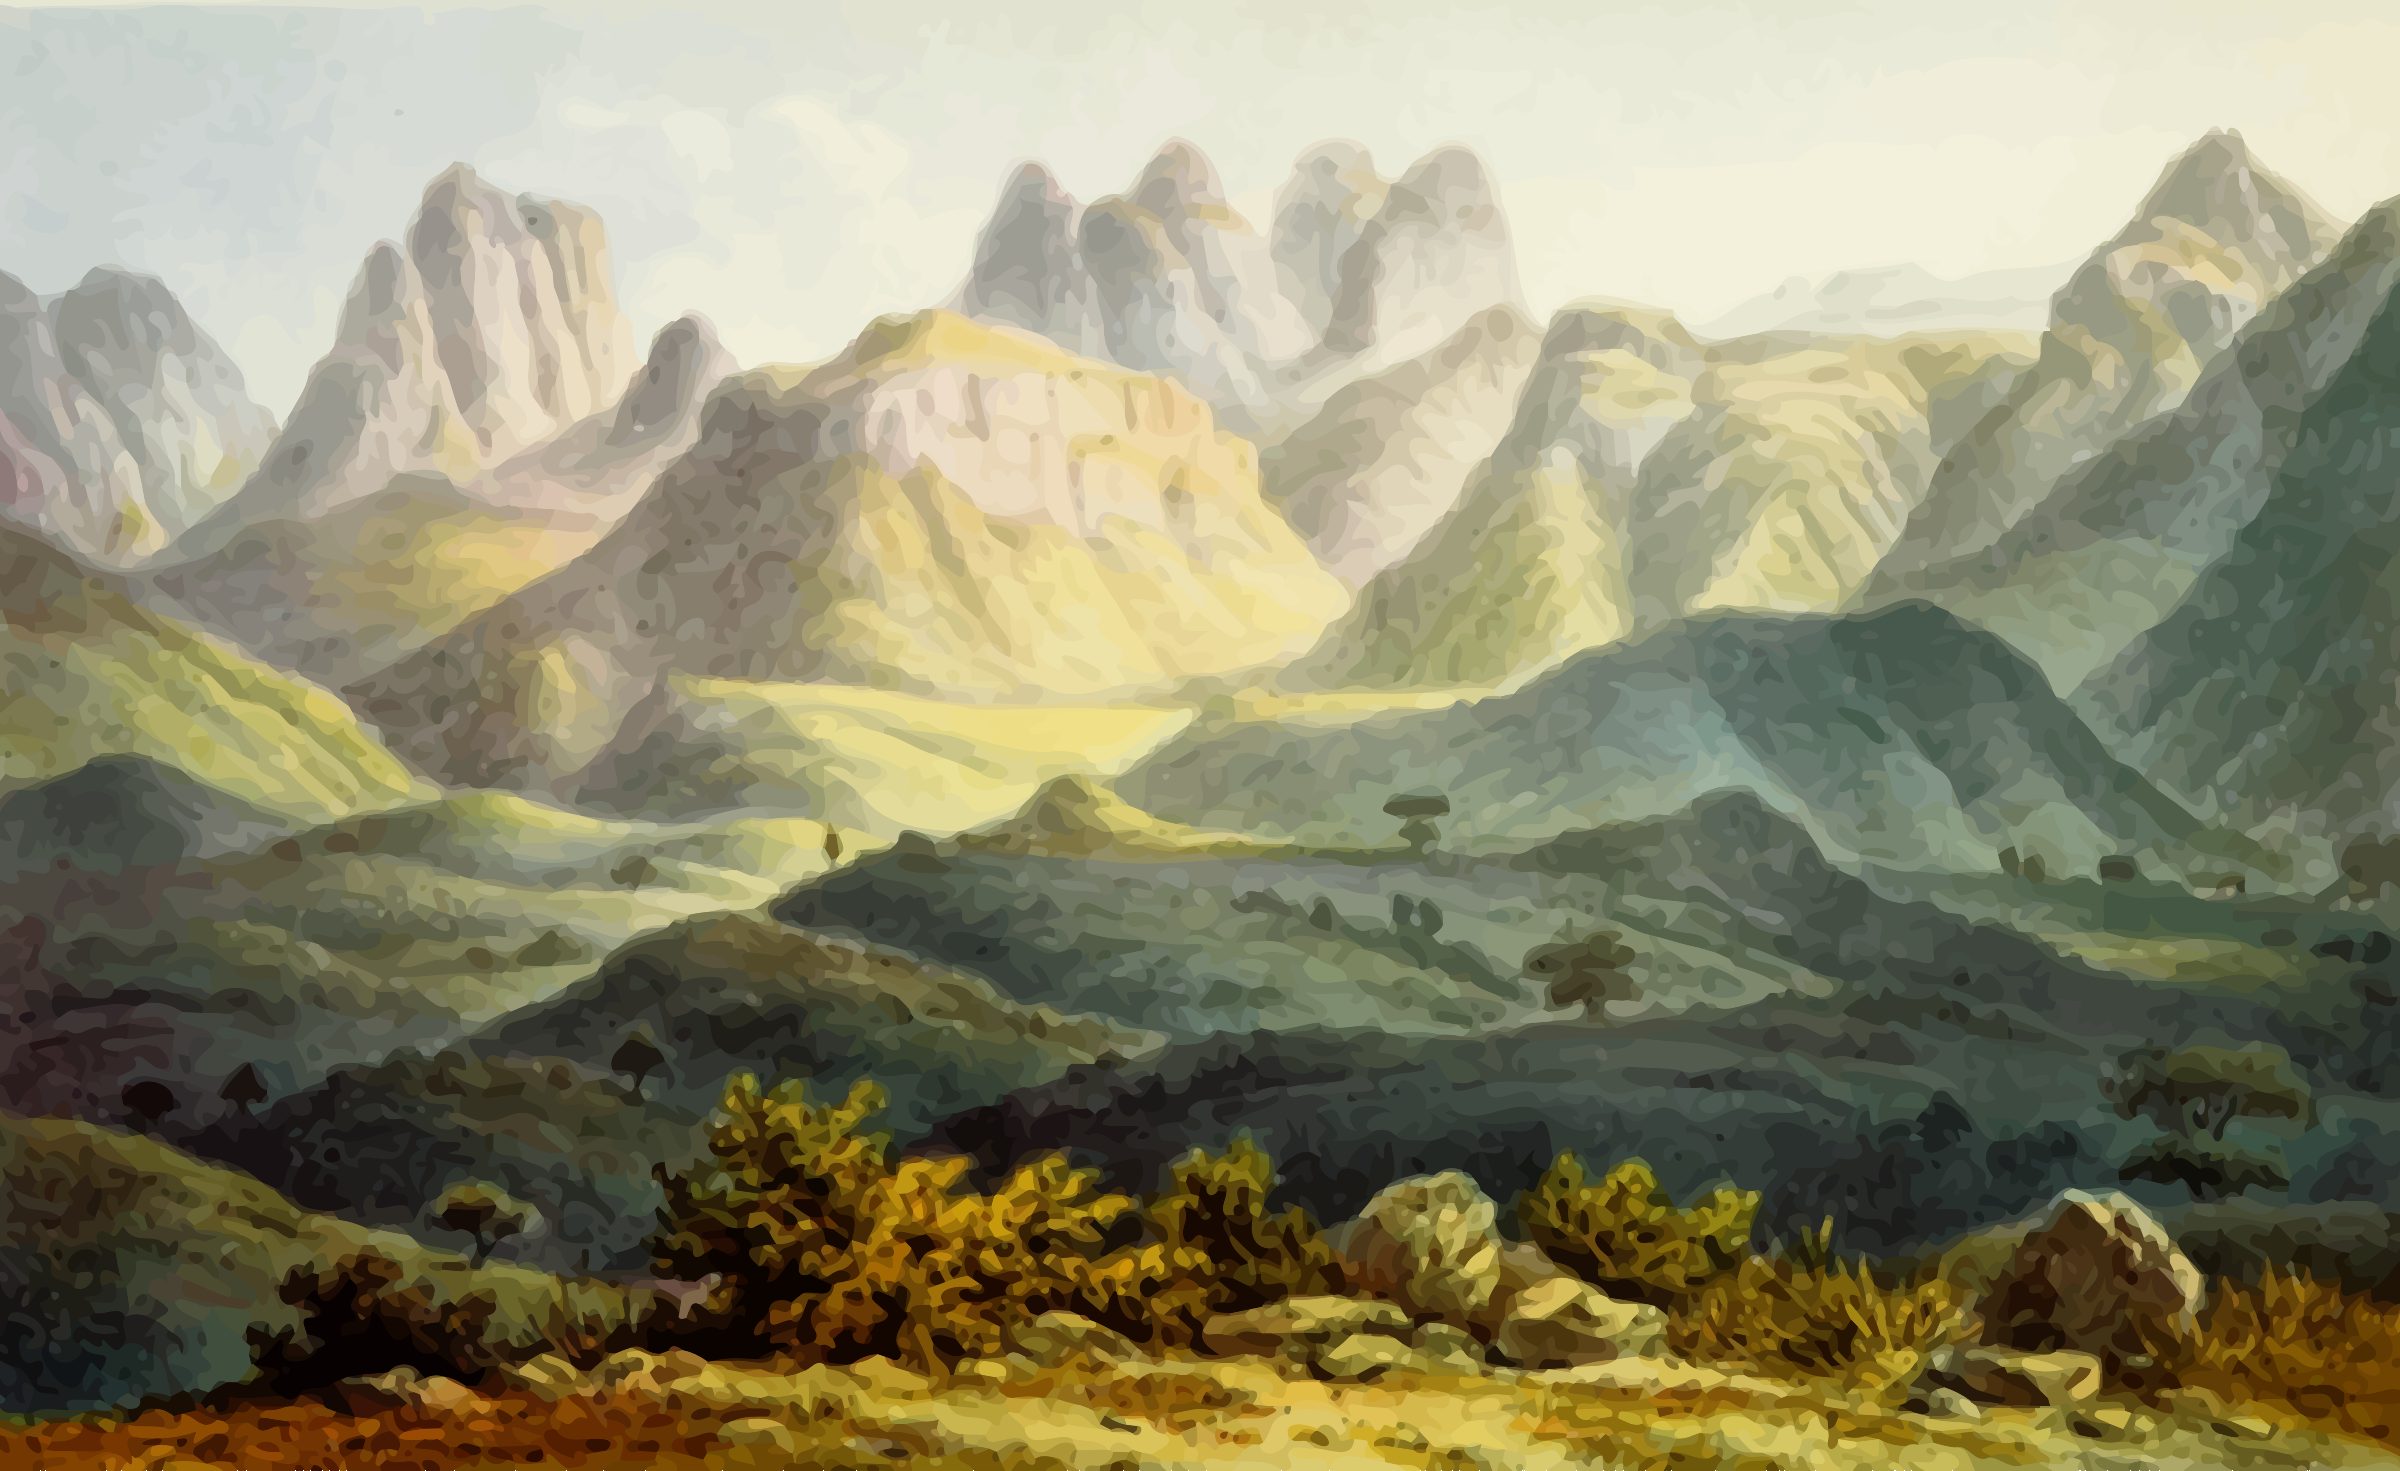 Mountain scene by Firkin